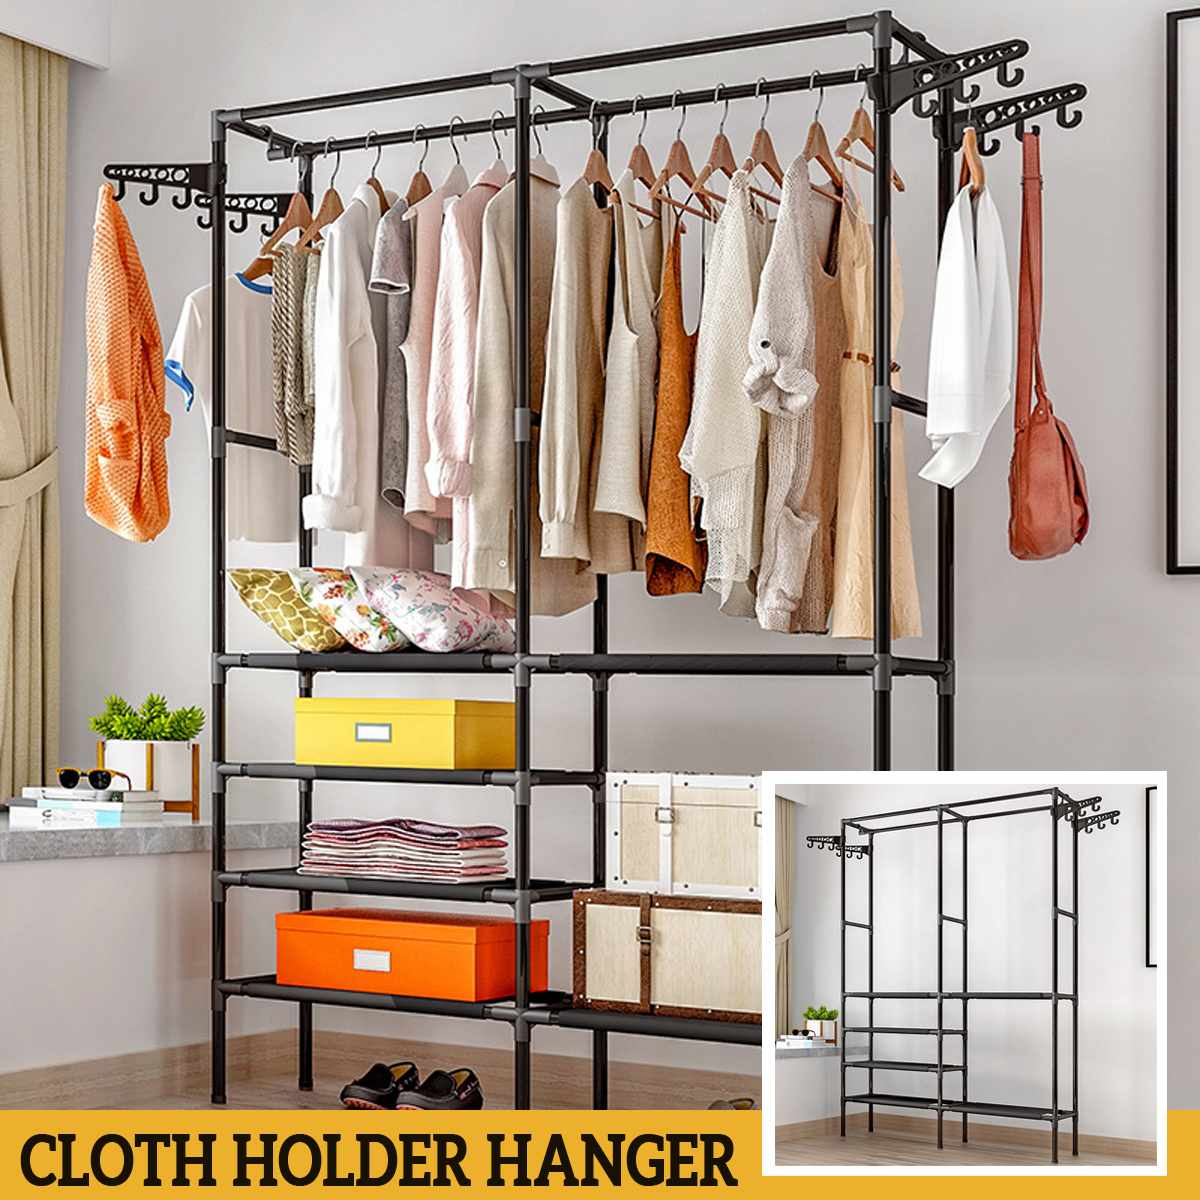 Clothes Rack Floor Standing Clothes Hanging Colorful Storage Shelf Clothes Hanger Racks Couple Simple Style Bedroom Furniture